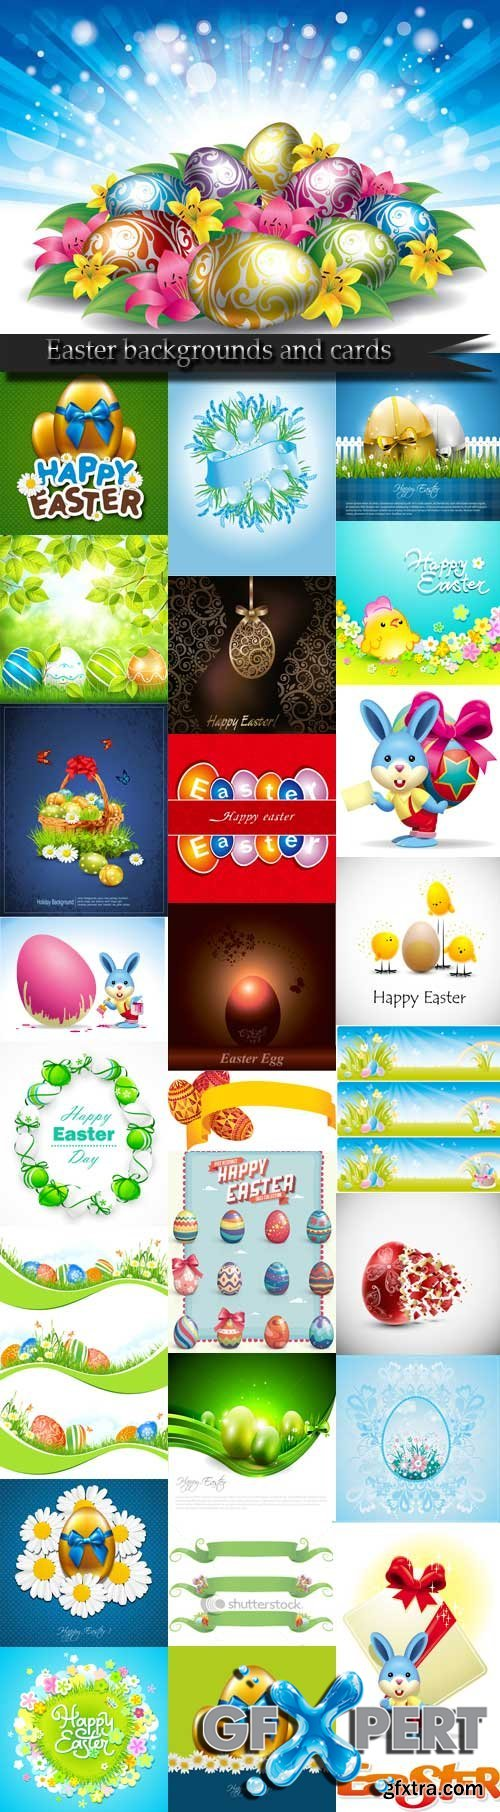 Easter backgrounds and cards vector